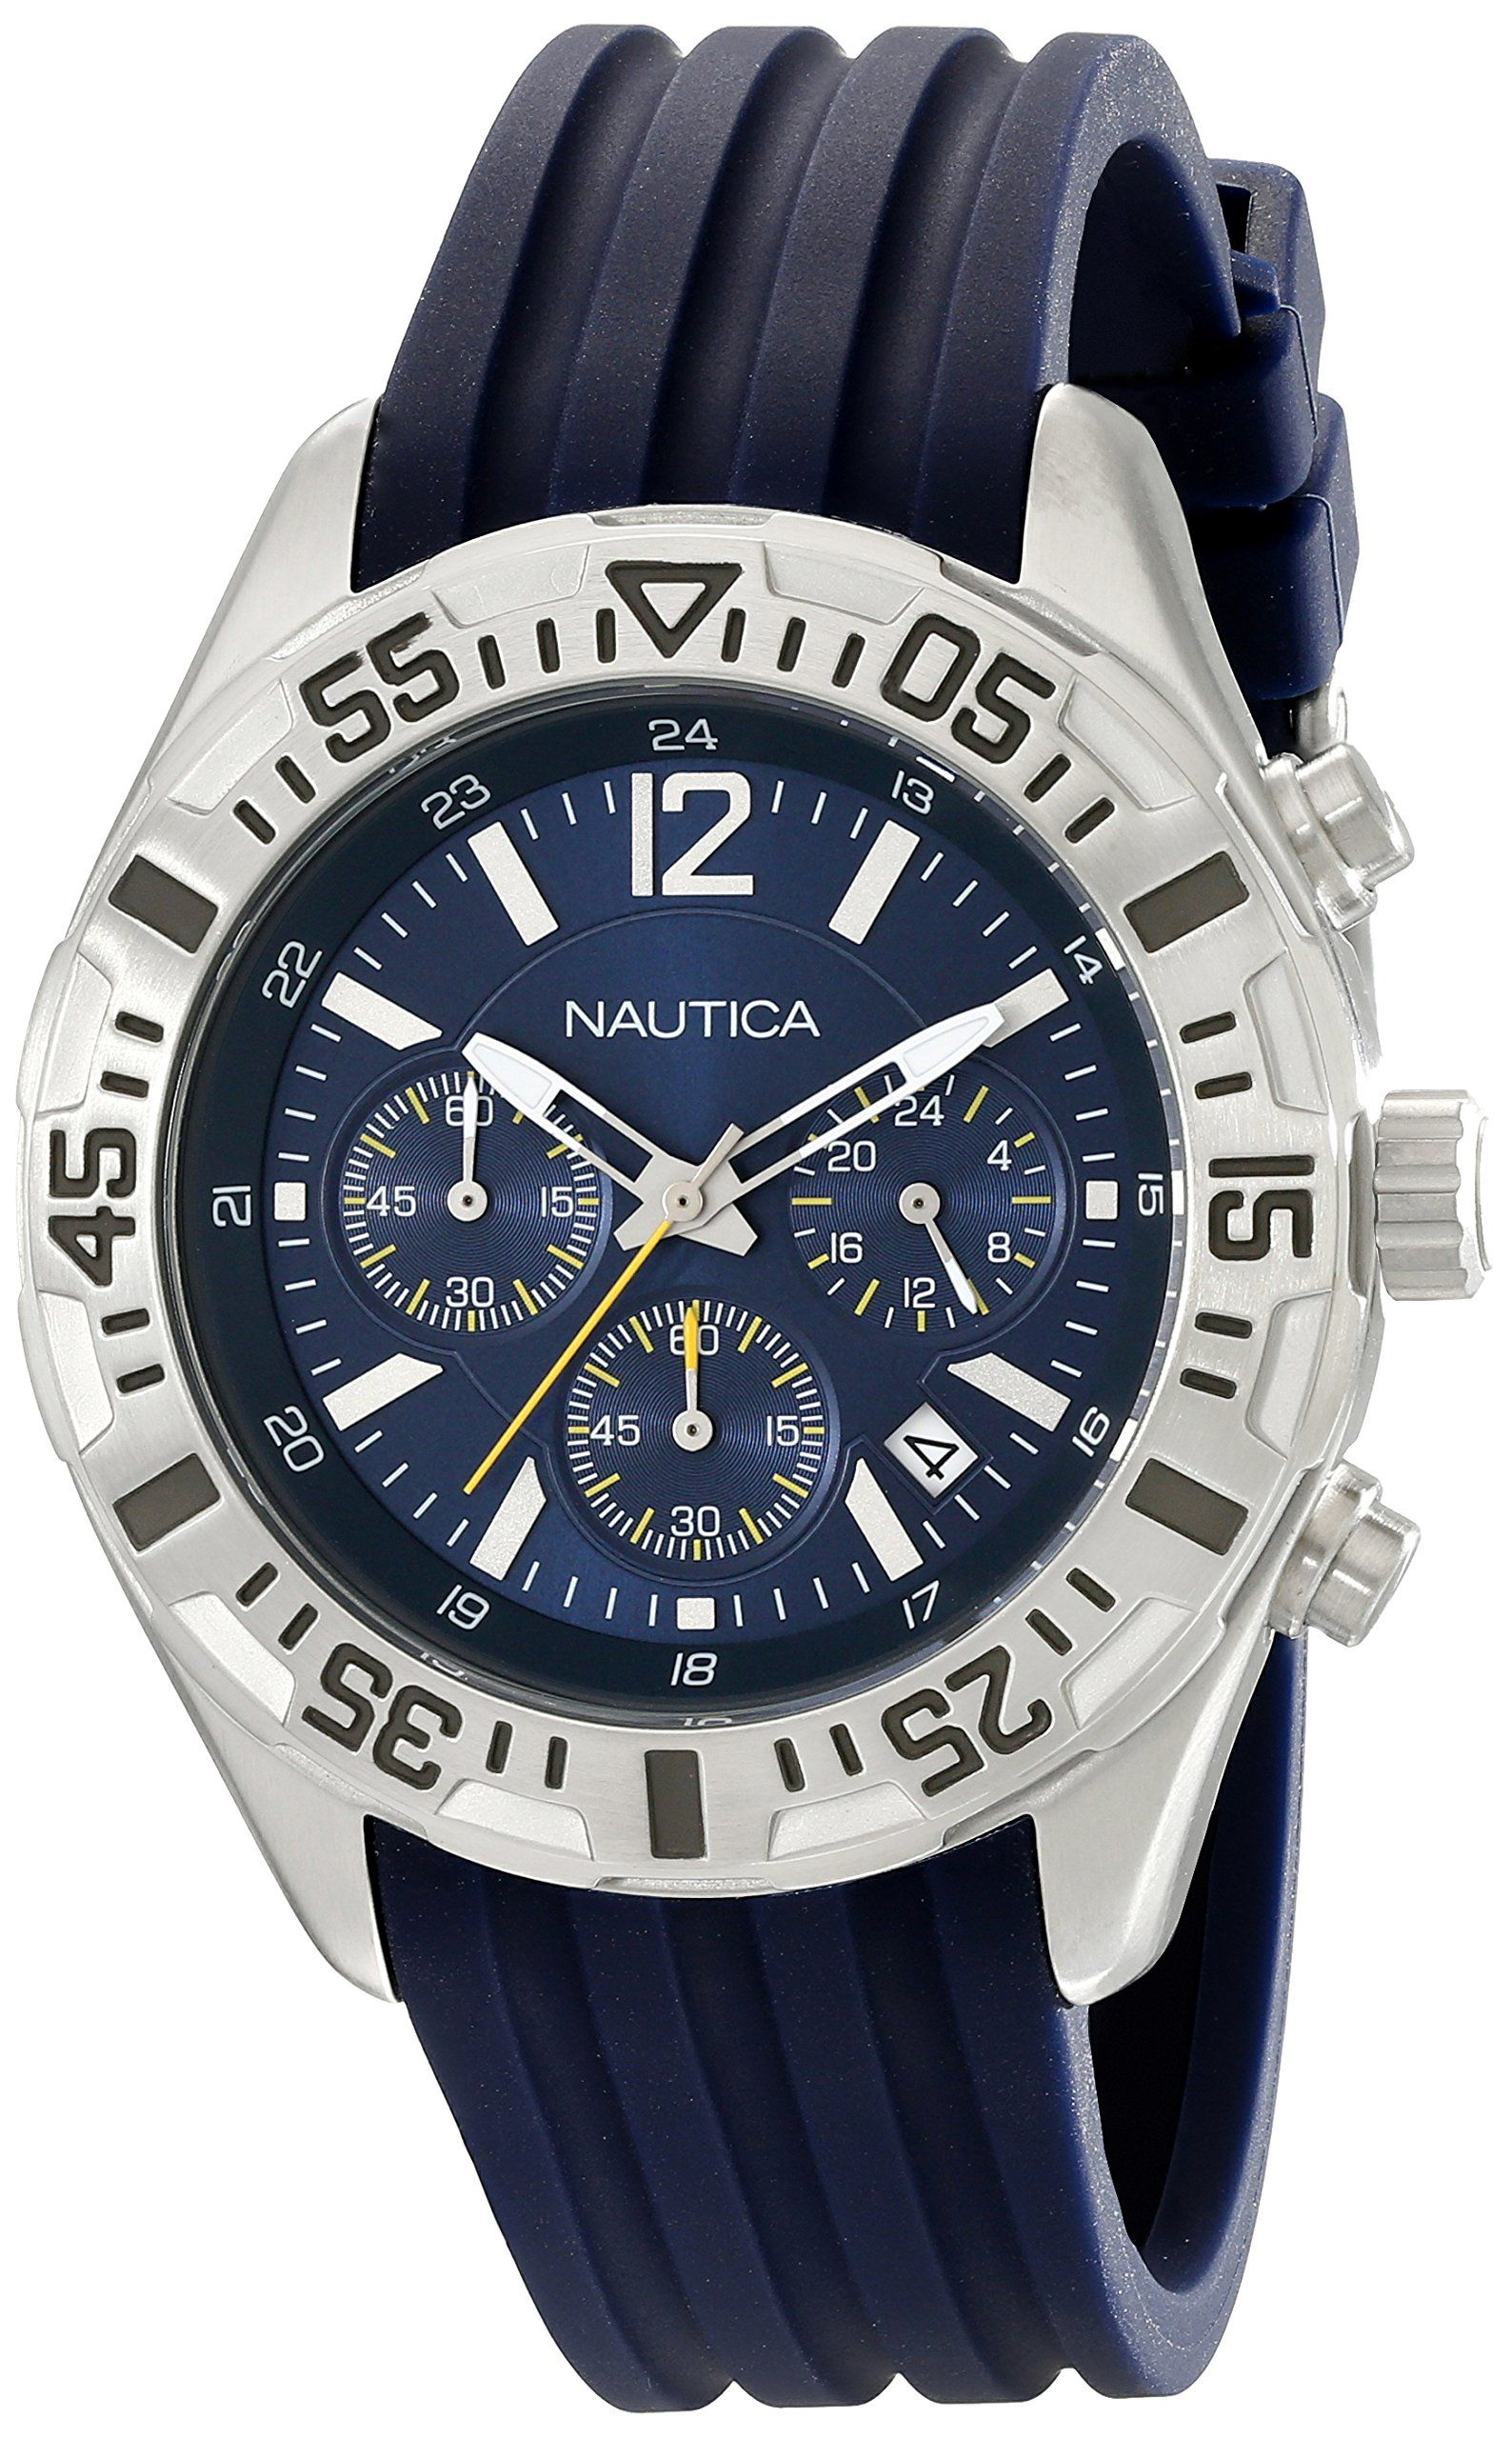 Nautica Men's N17667G NST 402 Stainless Steel Multifunction Watch. Round watch featuring dive-style bezel and logoed blue dial with luminous hands, magnified date window, and three chronograph subdials. 45 mm stainless steel case with mineral dial window. Japanese quartz movement with analog display. Blue silicone band with buckle closure. Water resistant to 100 m (330 ft): In general, suitable for swimming and snorkeling, but not scuba diving.